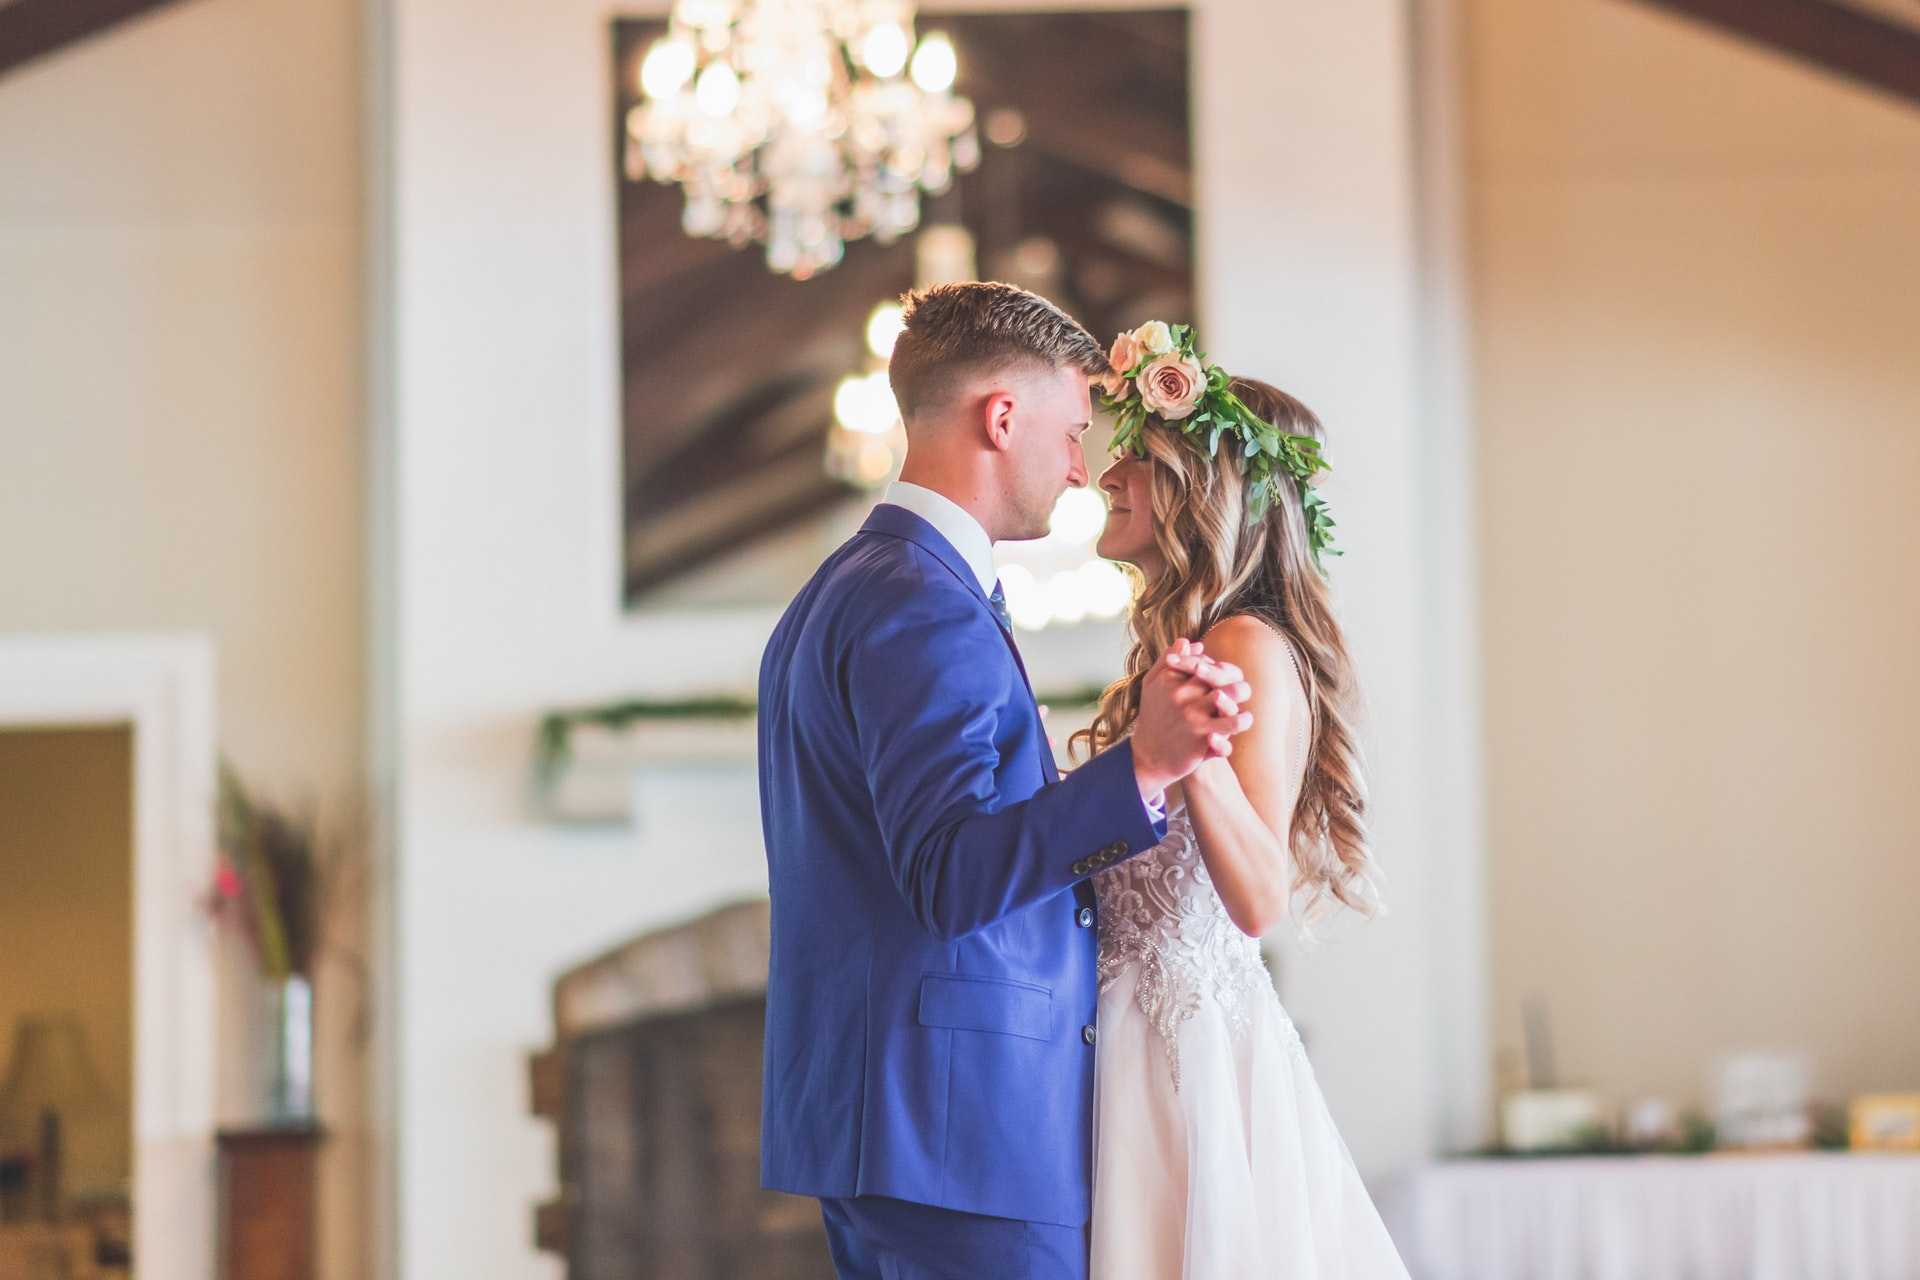 How to Prepare for Your First Dance at Your Wedding